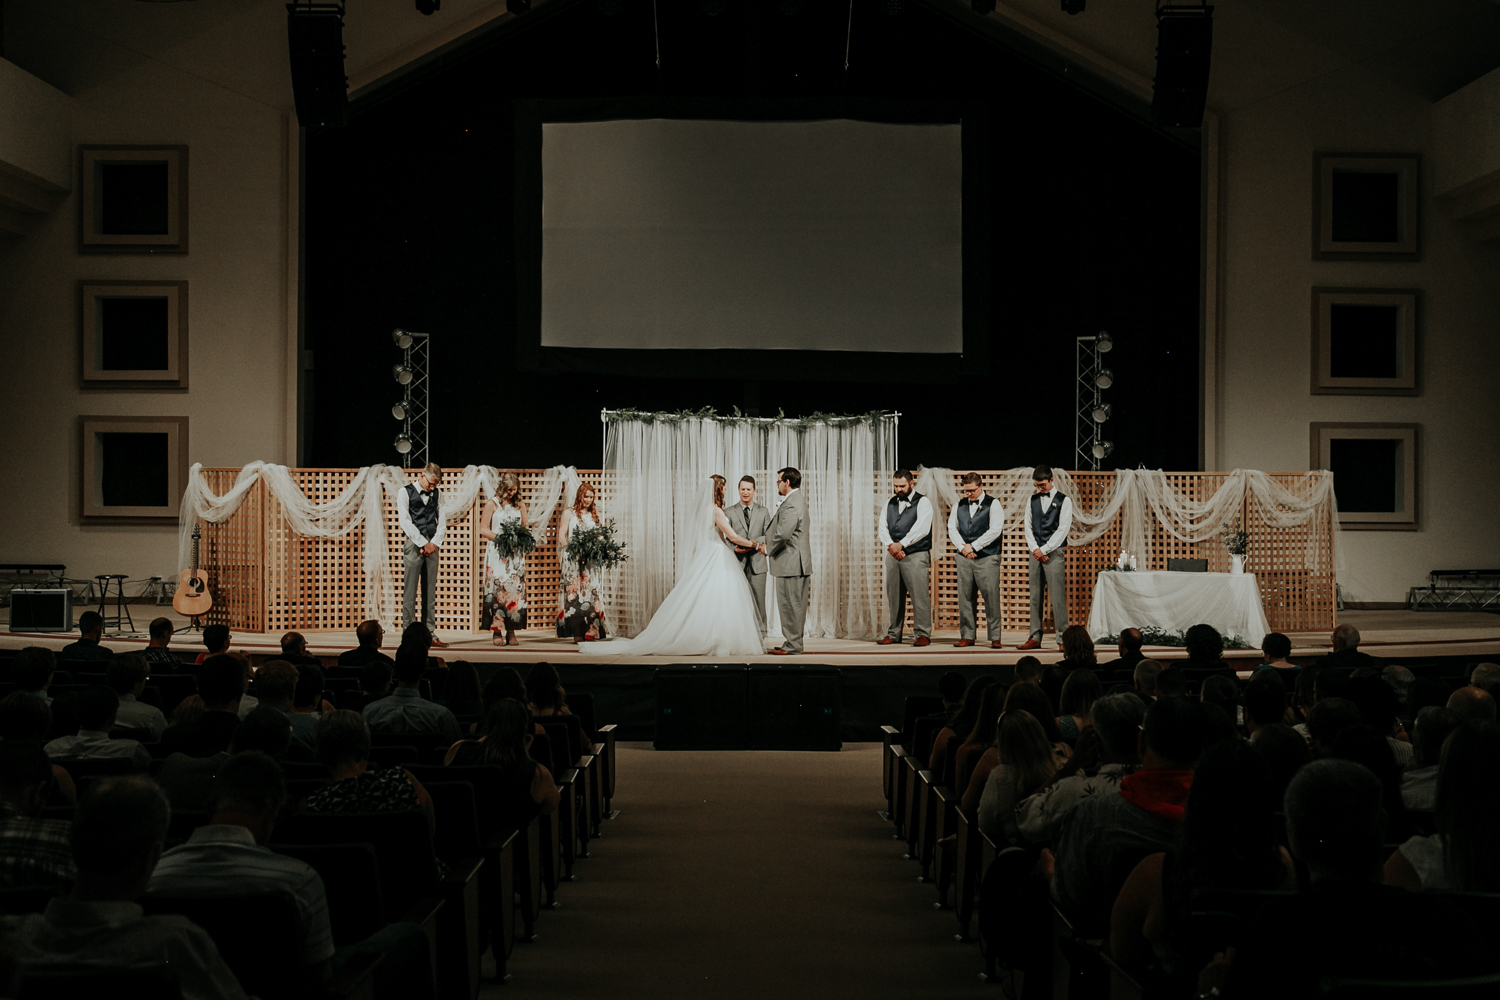 lethbridge-wedding-photographer-love-and-be-loved-photography-dan-tynnea-picture-image-photo-109.jpg